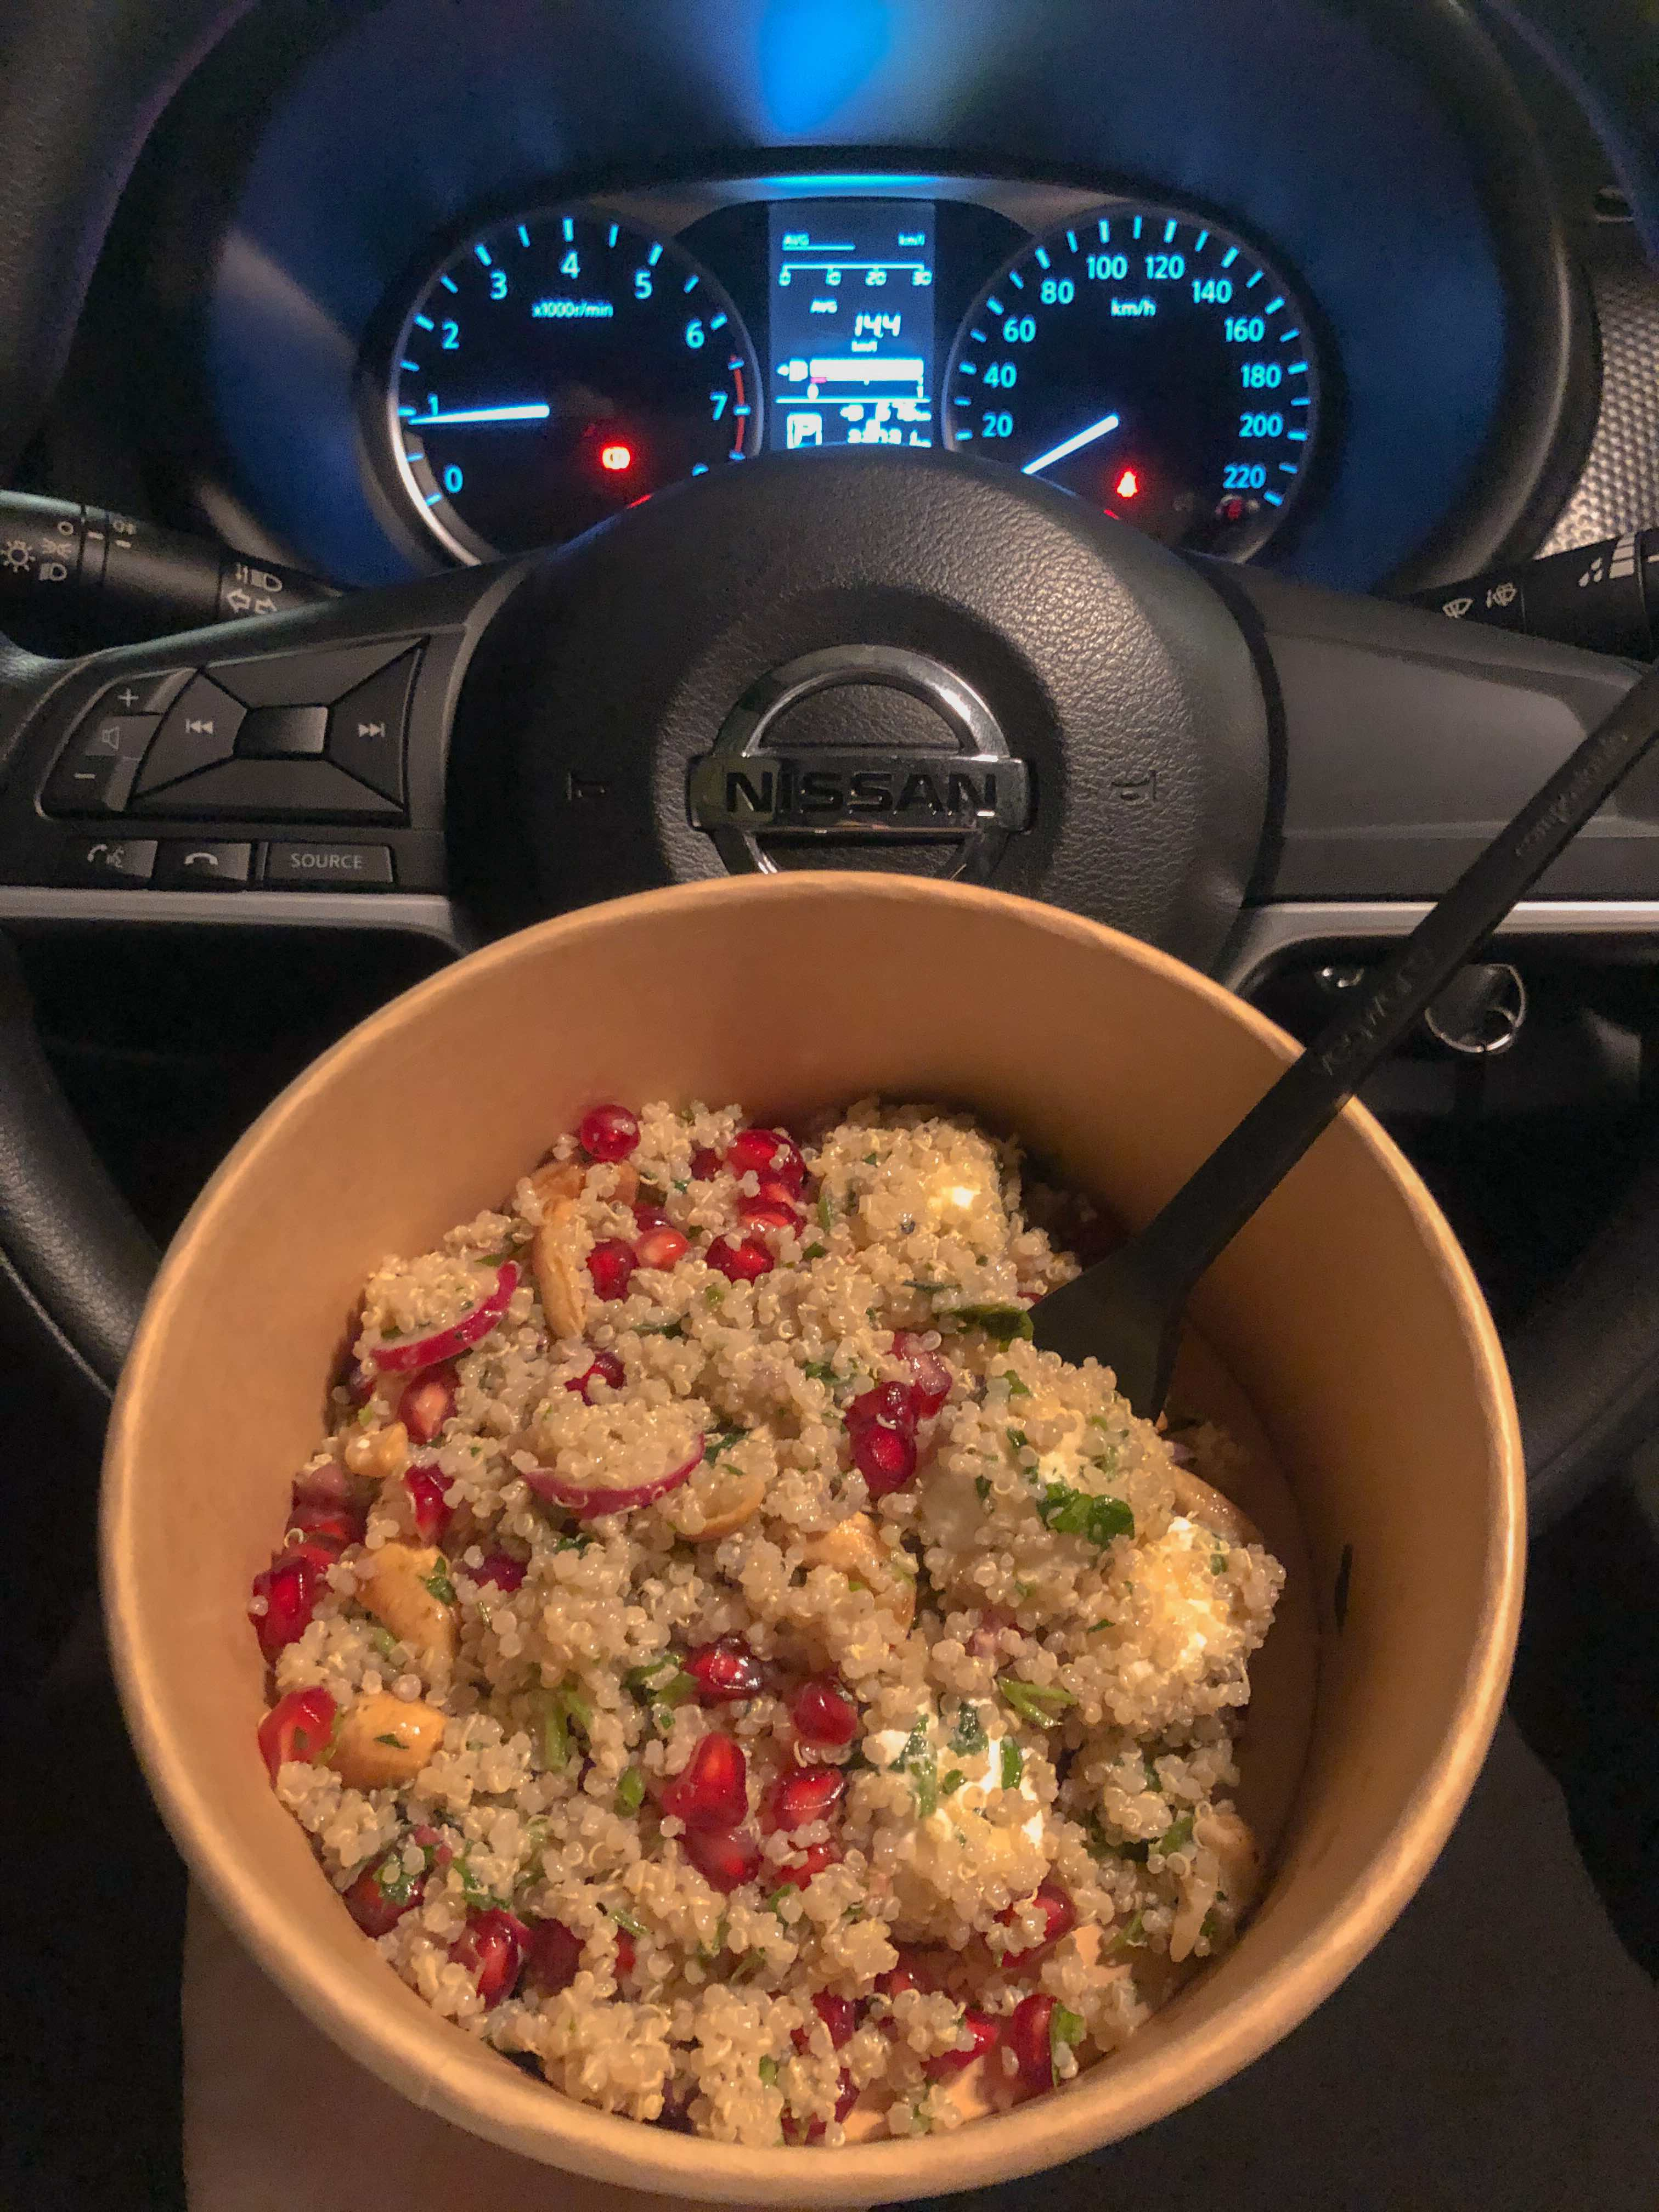 There were minor lifestyle adjustments to get used to, like driving with the steering wheel on the left side of the car. During Ramadan, you're not allowed to eat or drink in public by law, so I have lunch breaks in my car and drink water in the toilet or pantry.